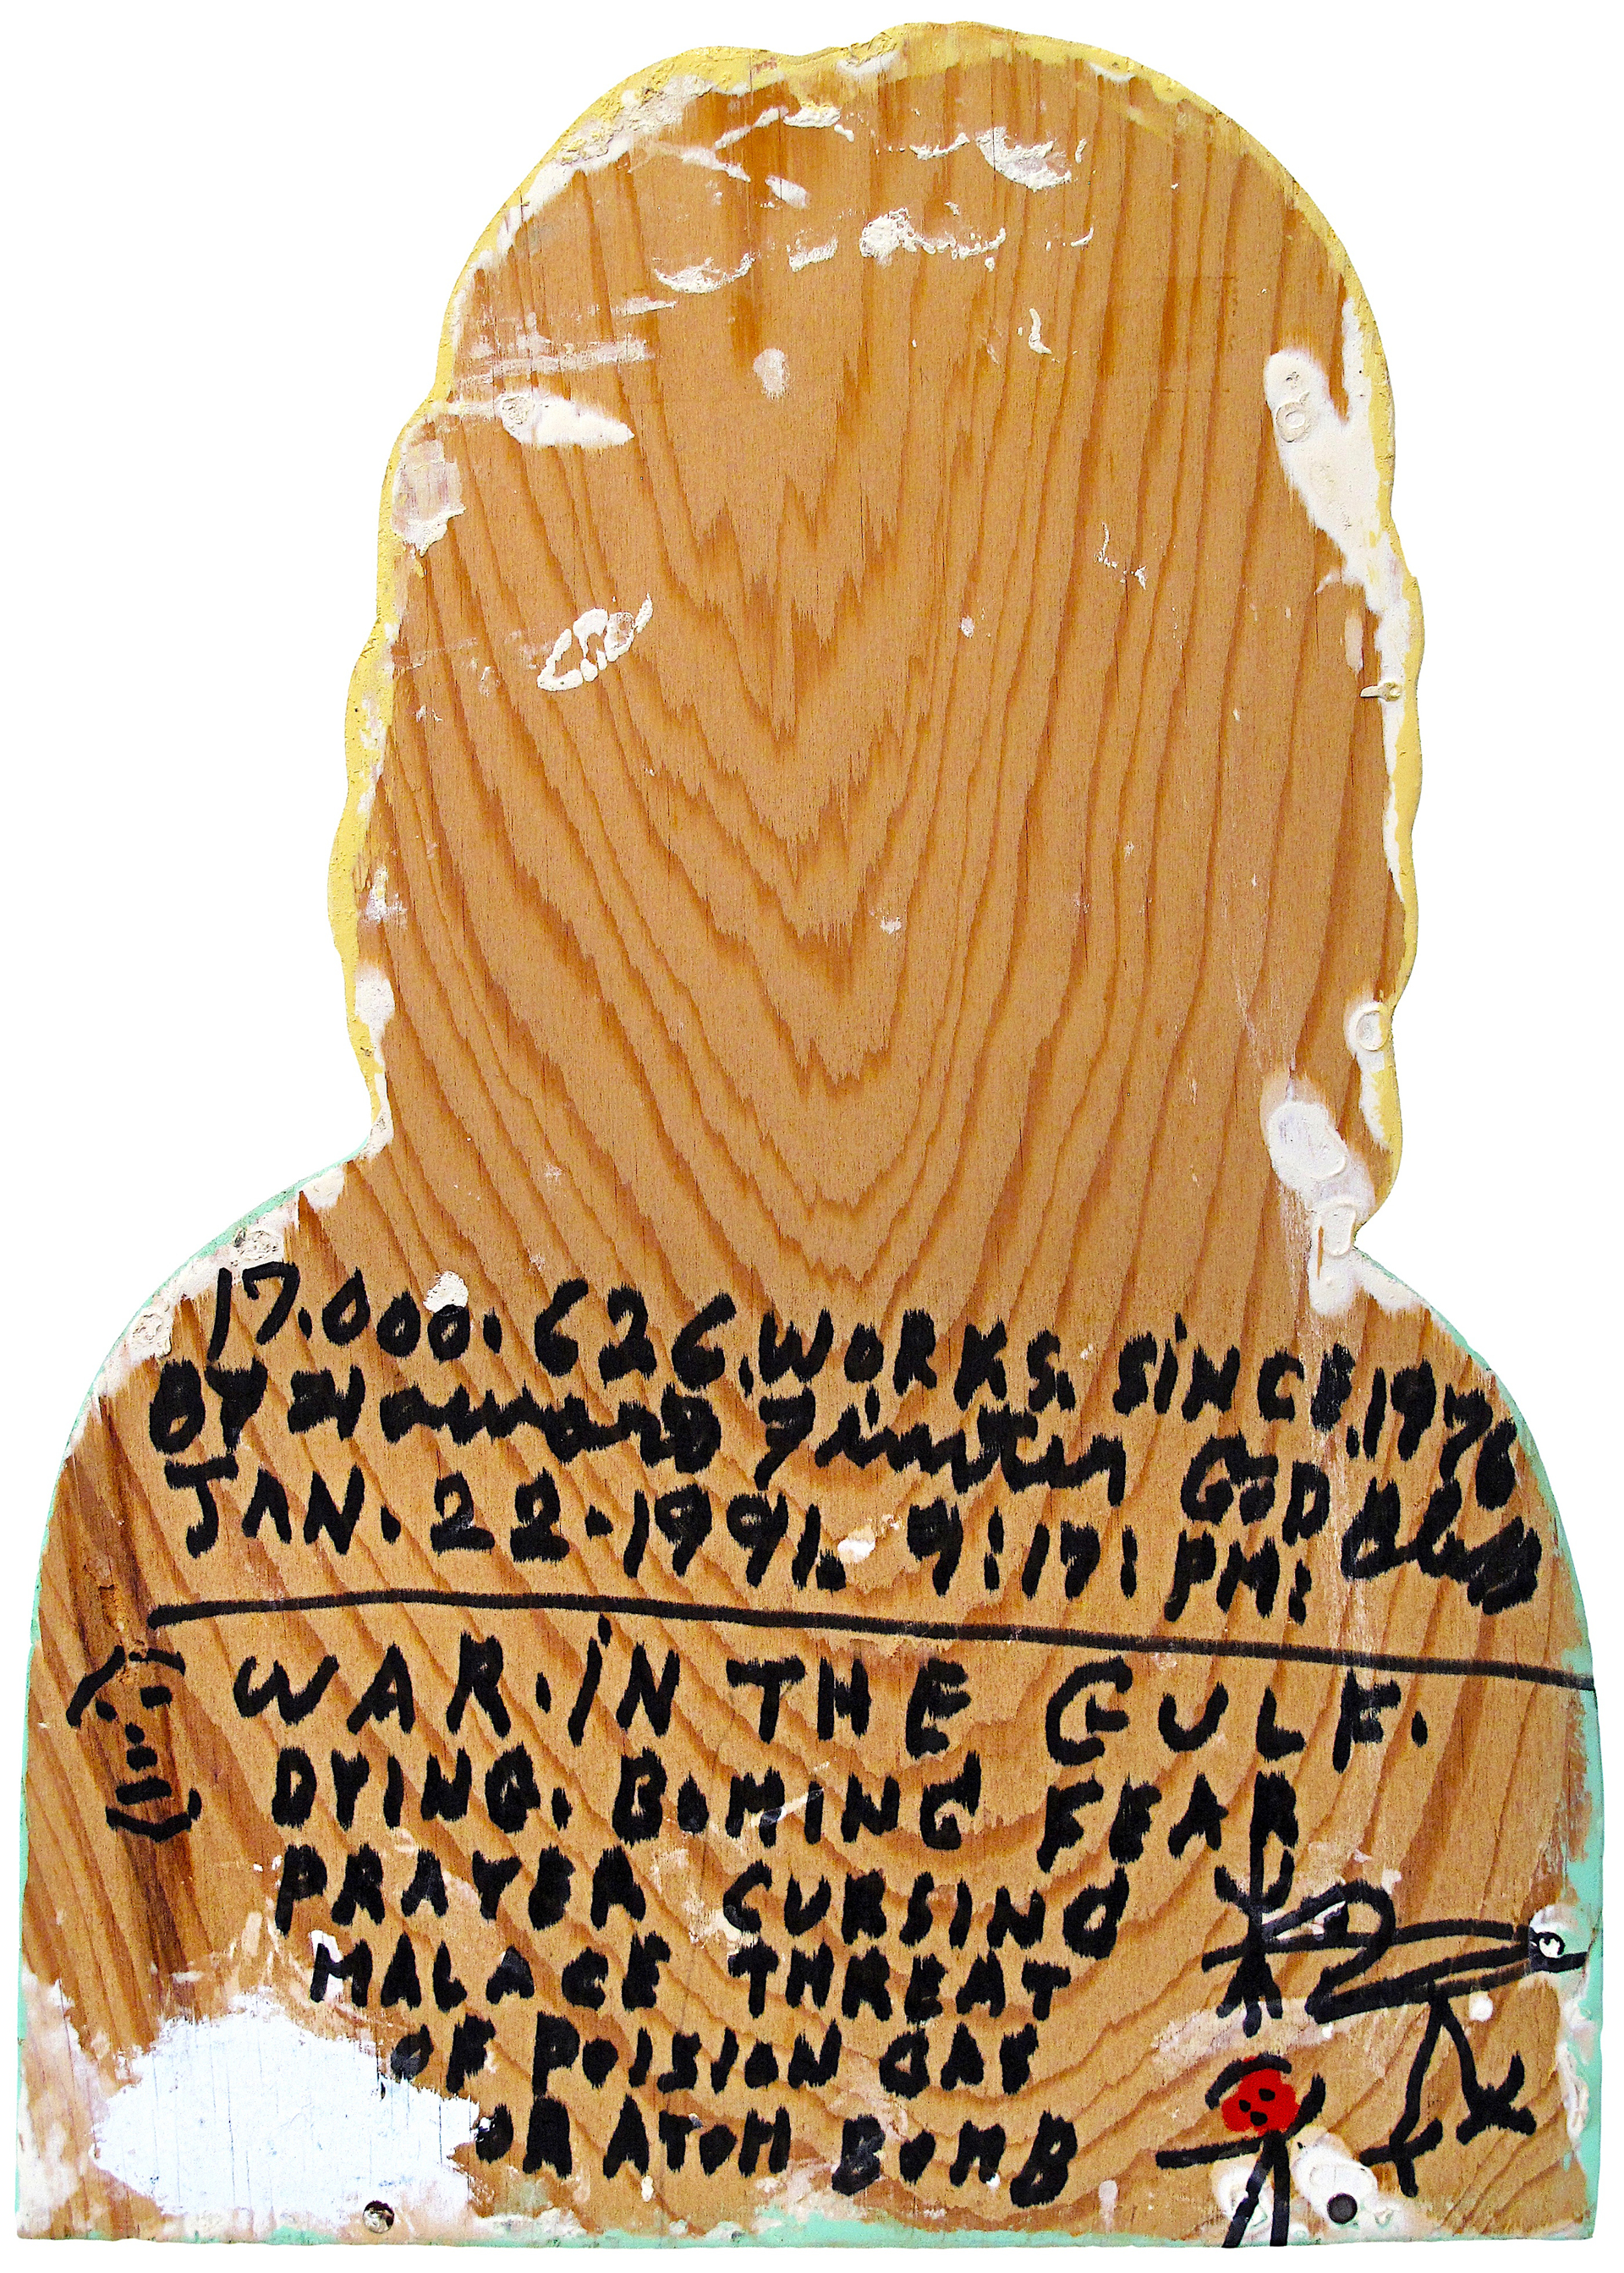 Baby Doll by Howard Finster